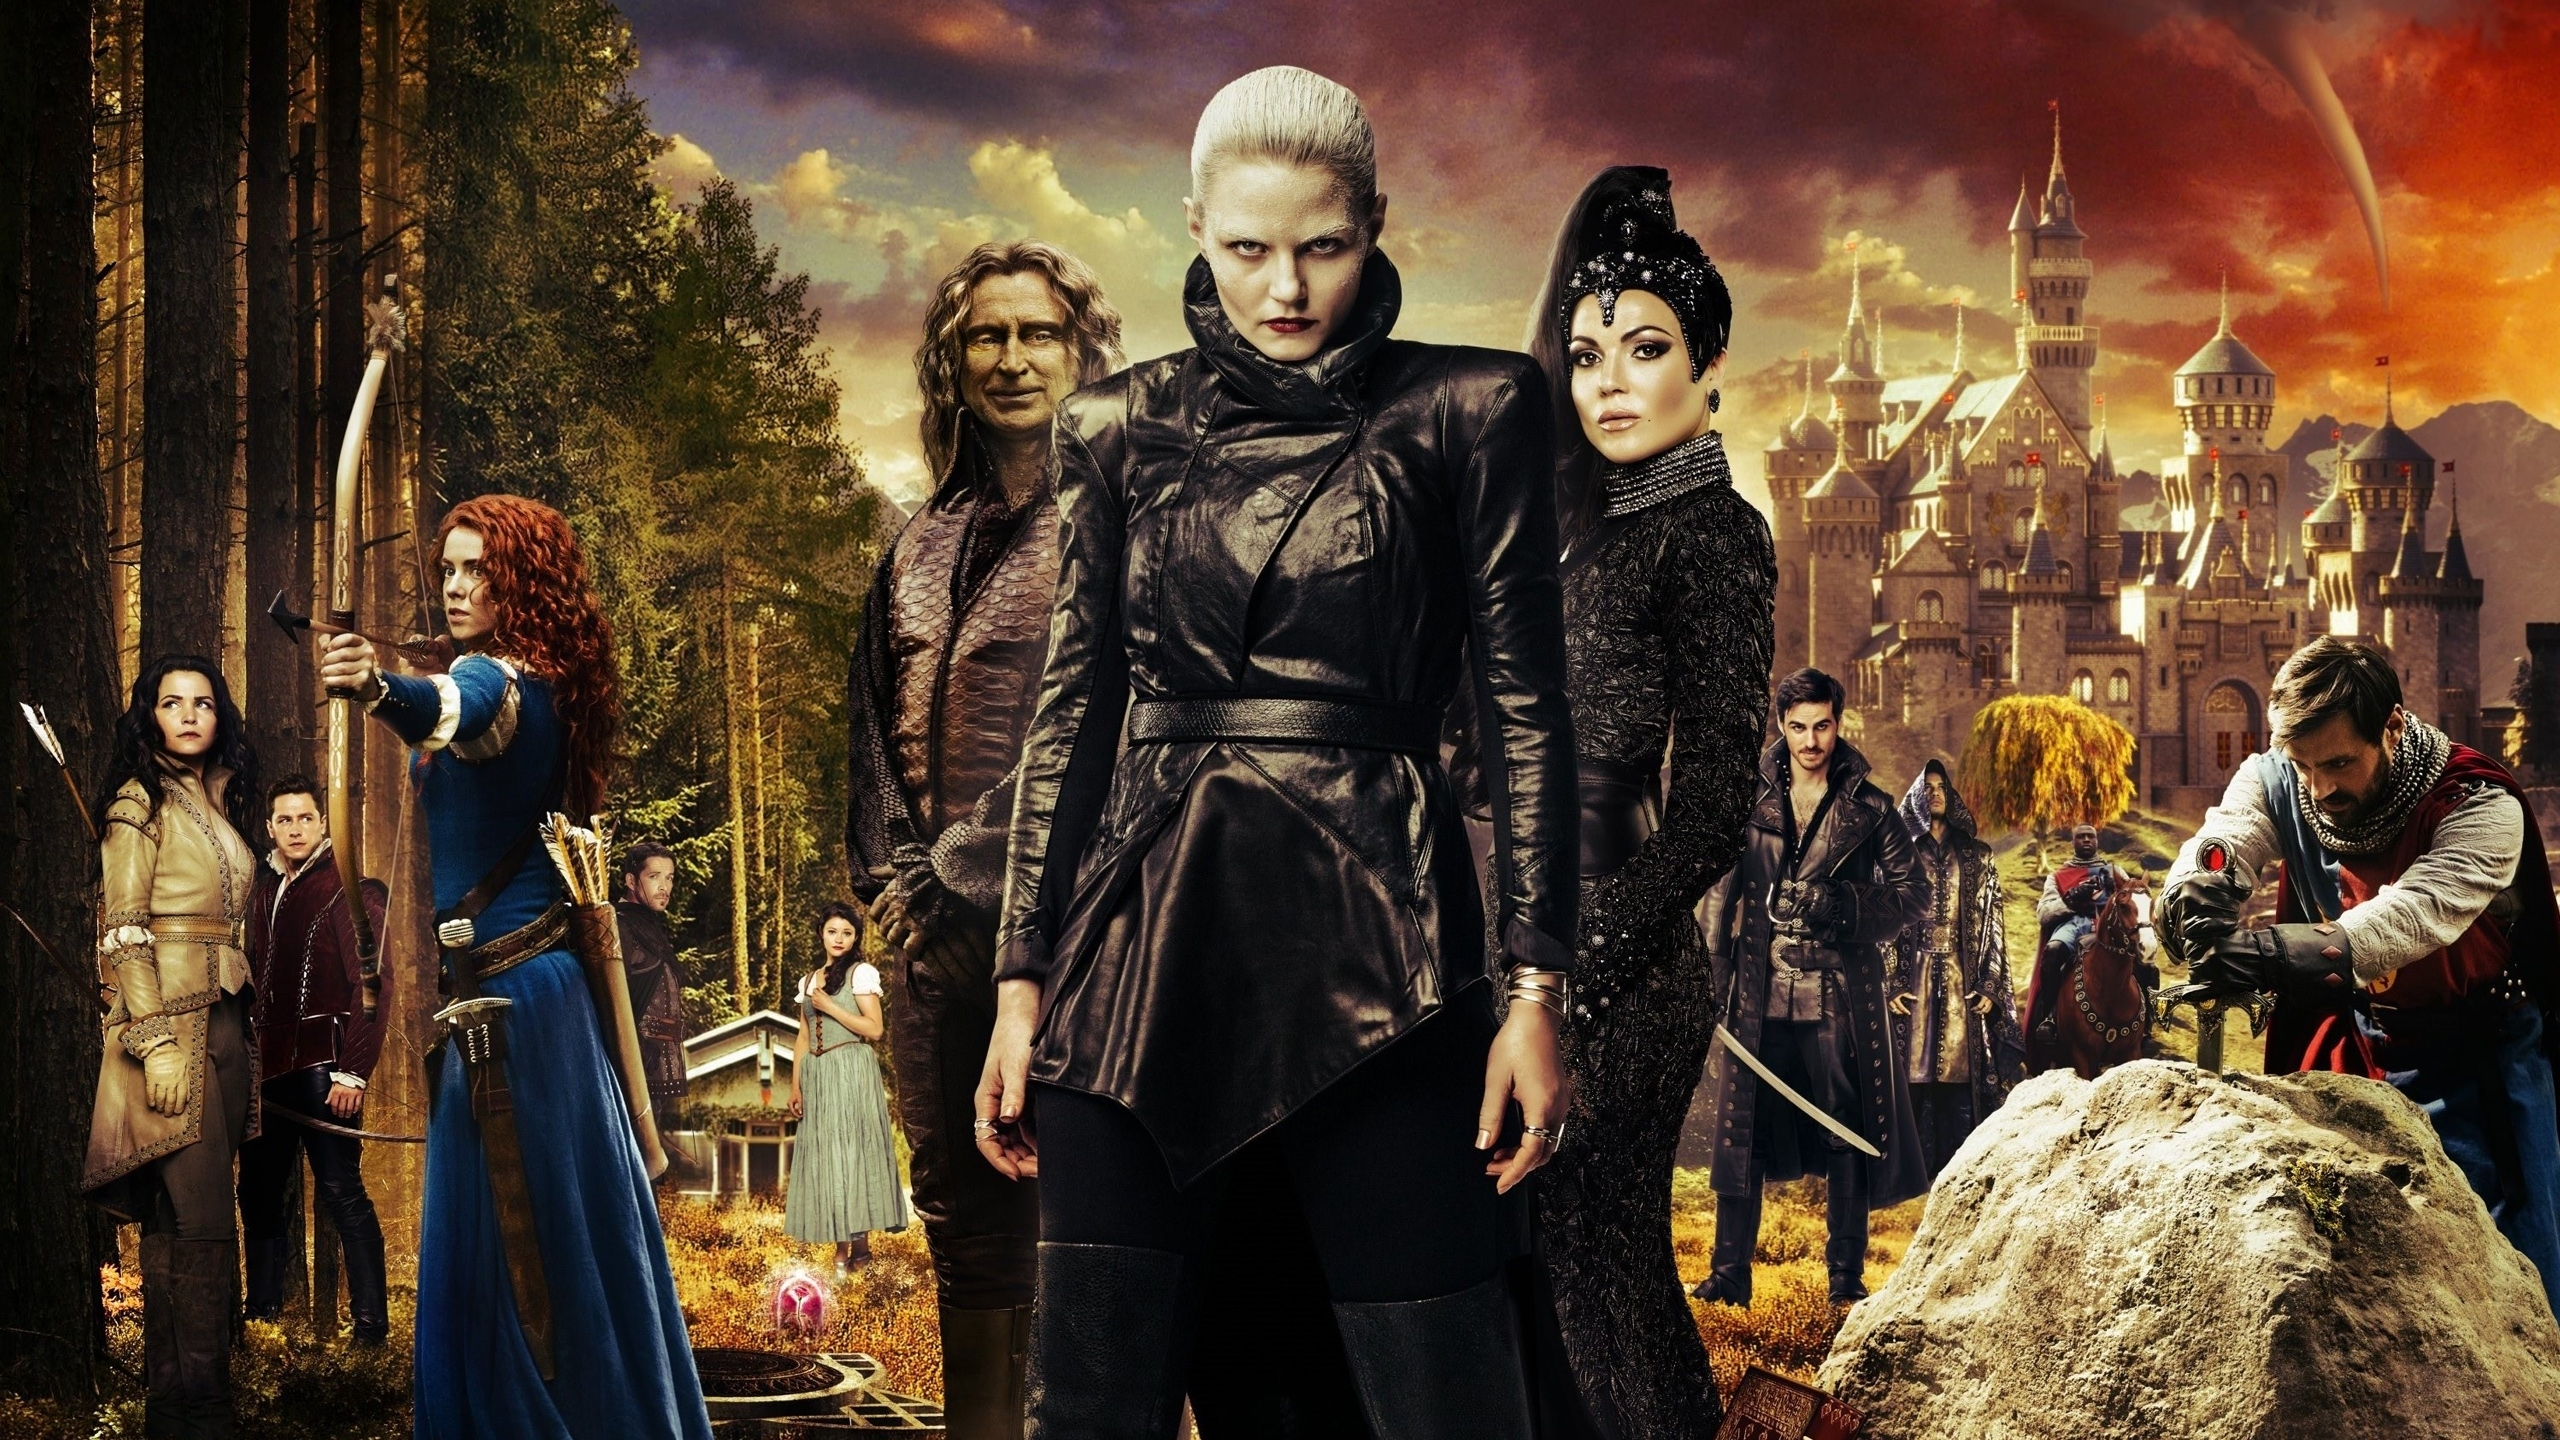 10 Latest Once Upon A Time Season 5 Wallpaper FULL HD 1080p For PC Desktop